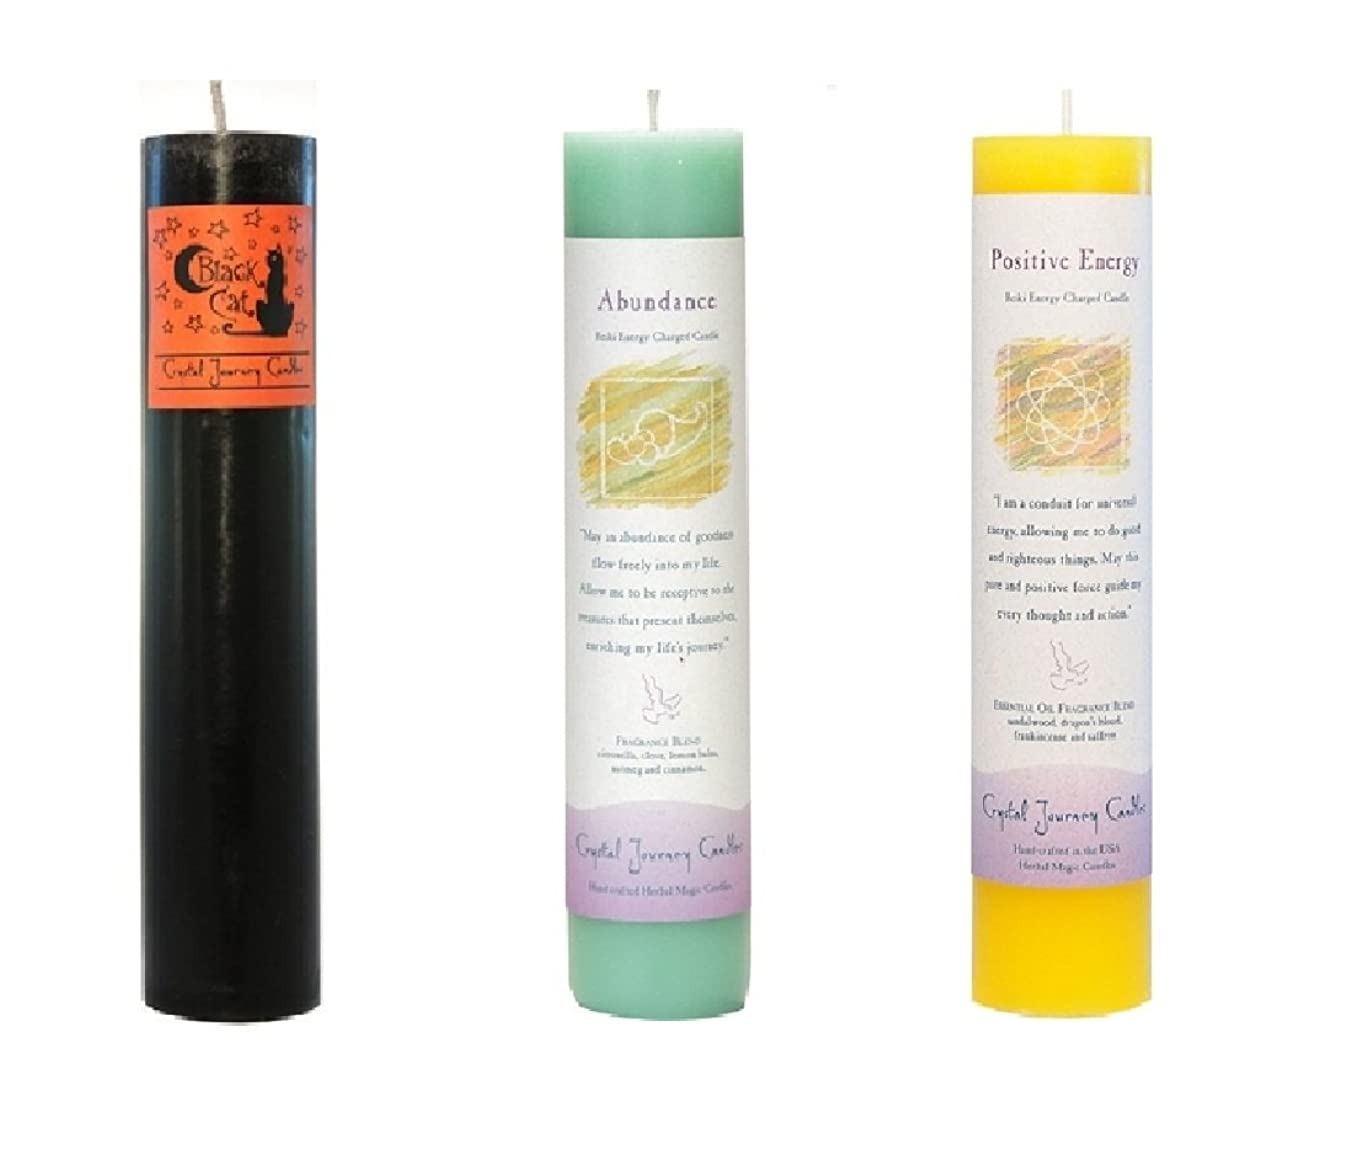 カーフ影のあるタンカー(Black Cat, Abundance, Positive Energy) - Crystal Journey Reiki Charged Herbal Magic Pillar Candle Bundle (Black Cat, Abundance, Positive Energy)